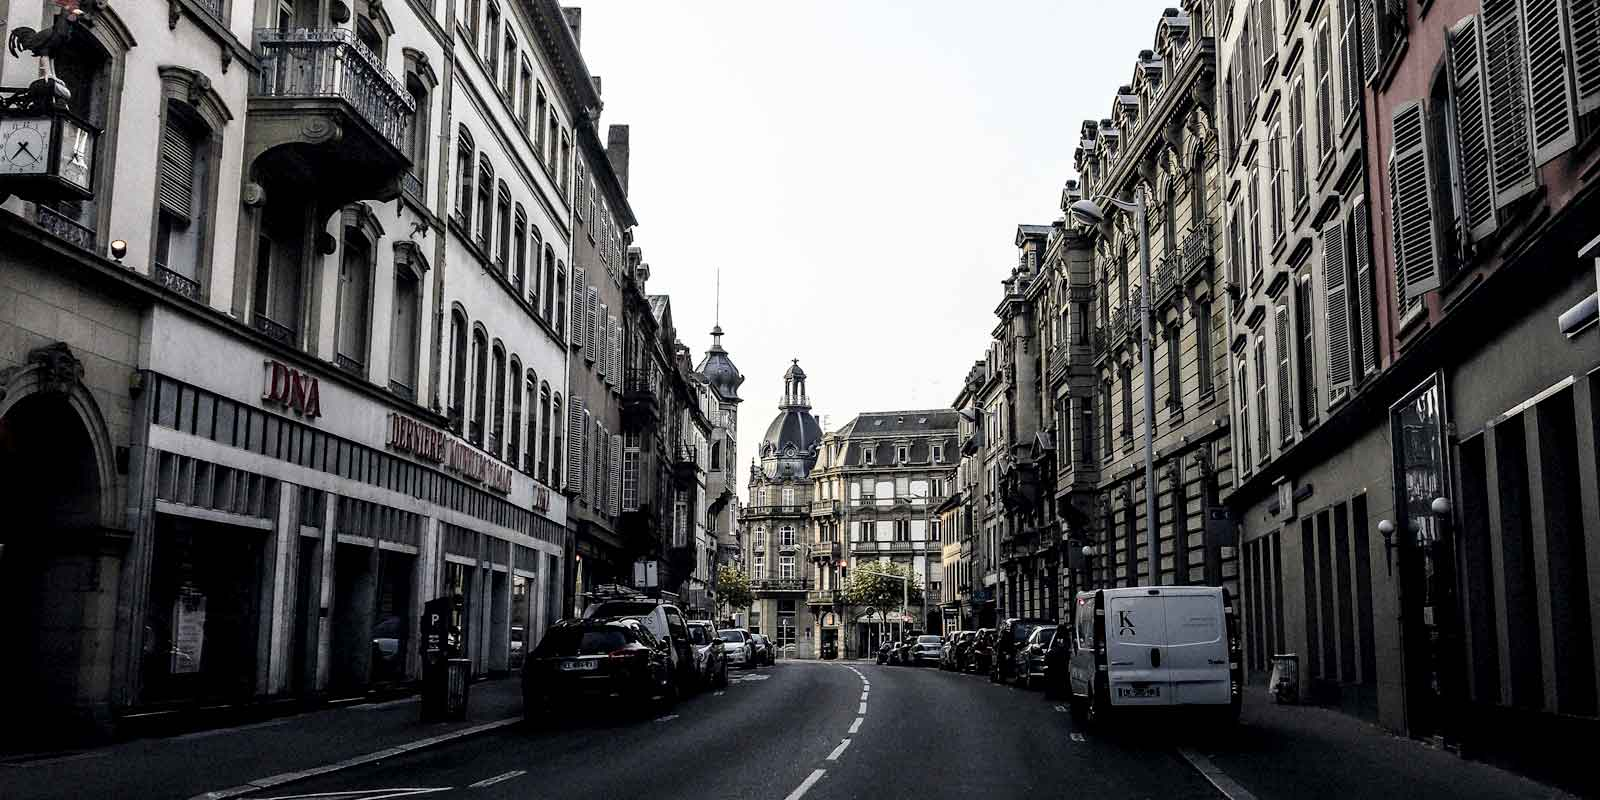 View of Strasbourg from the middle of a street